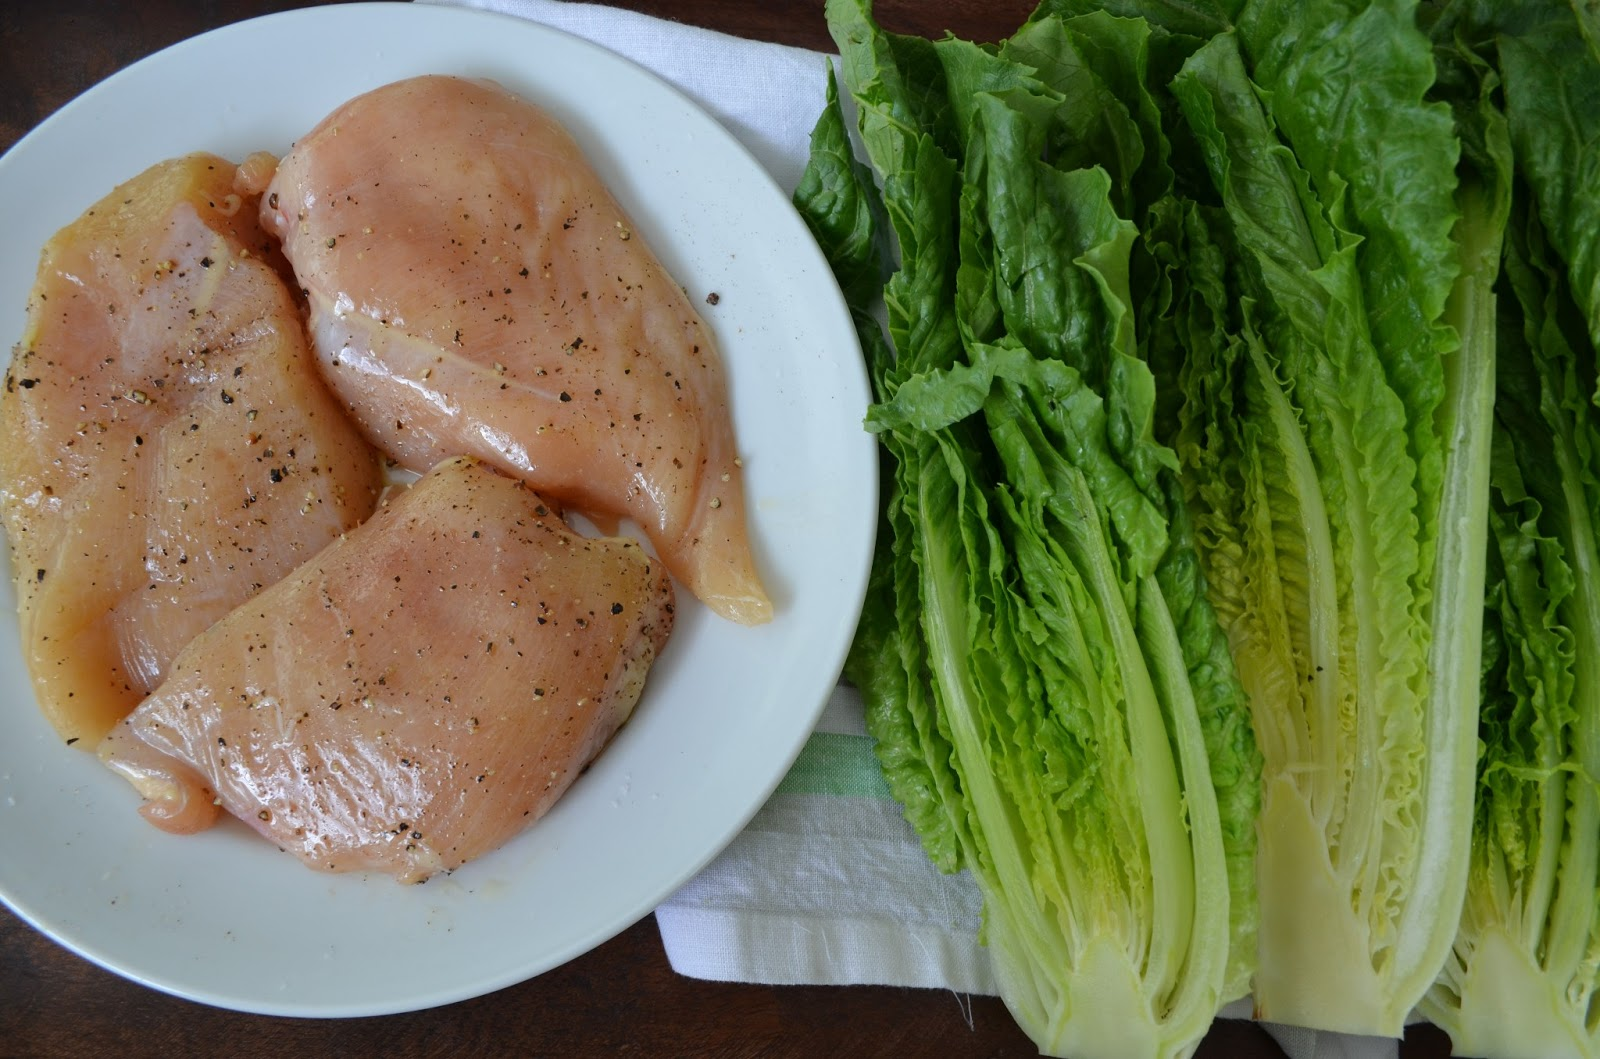 Parmesan Chicken With Roasted Romaine Lettuce